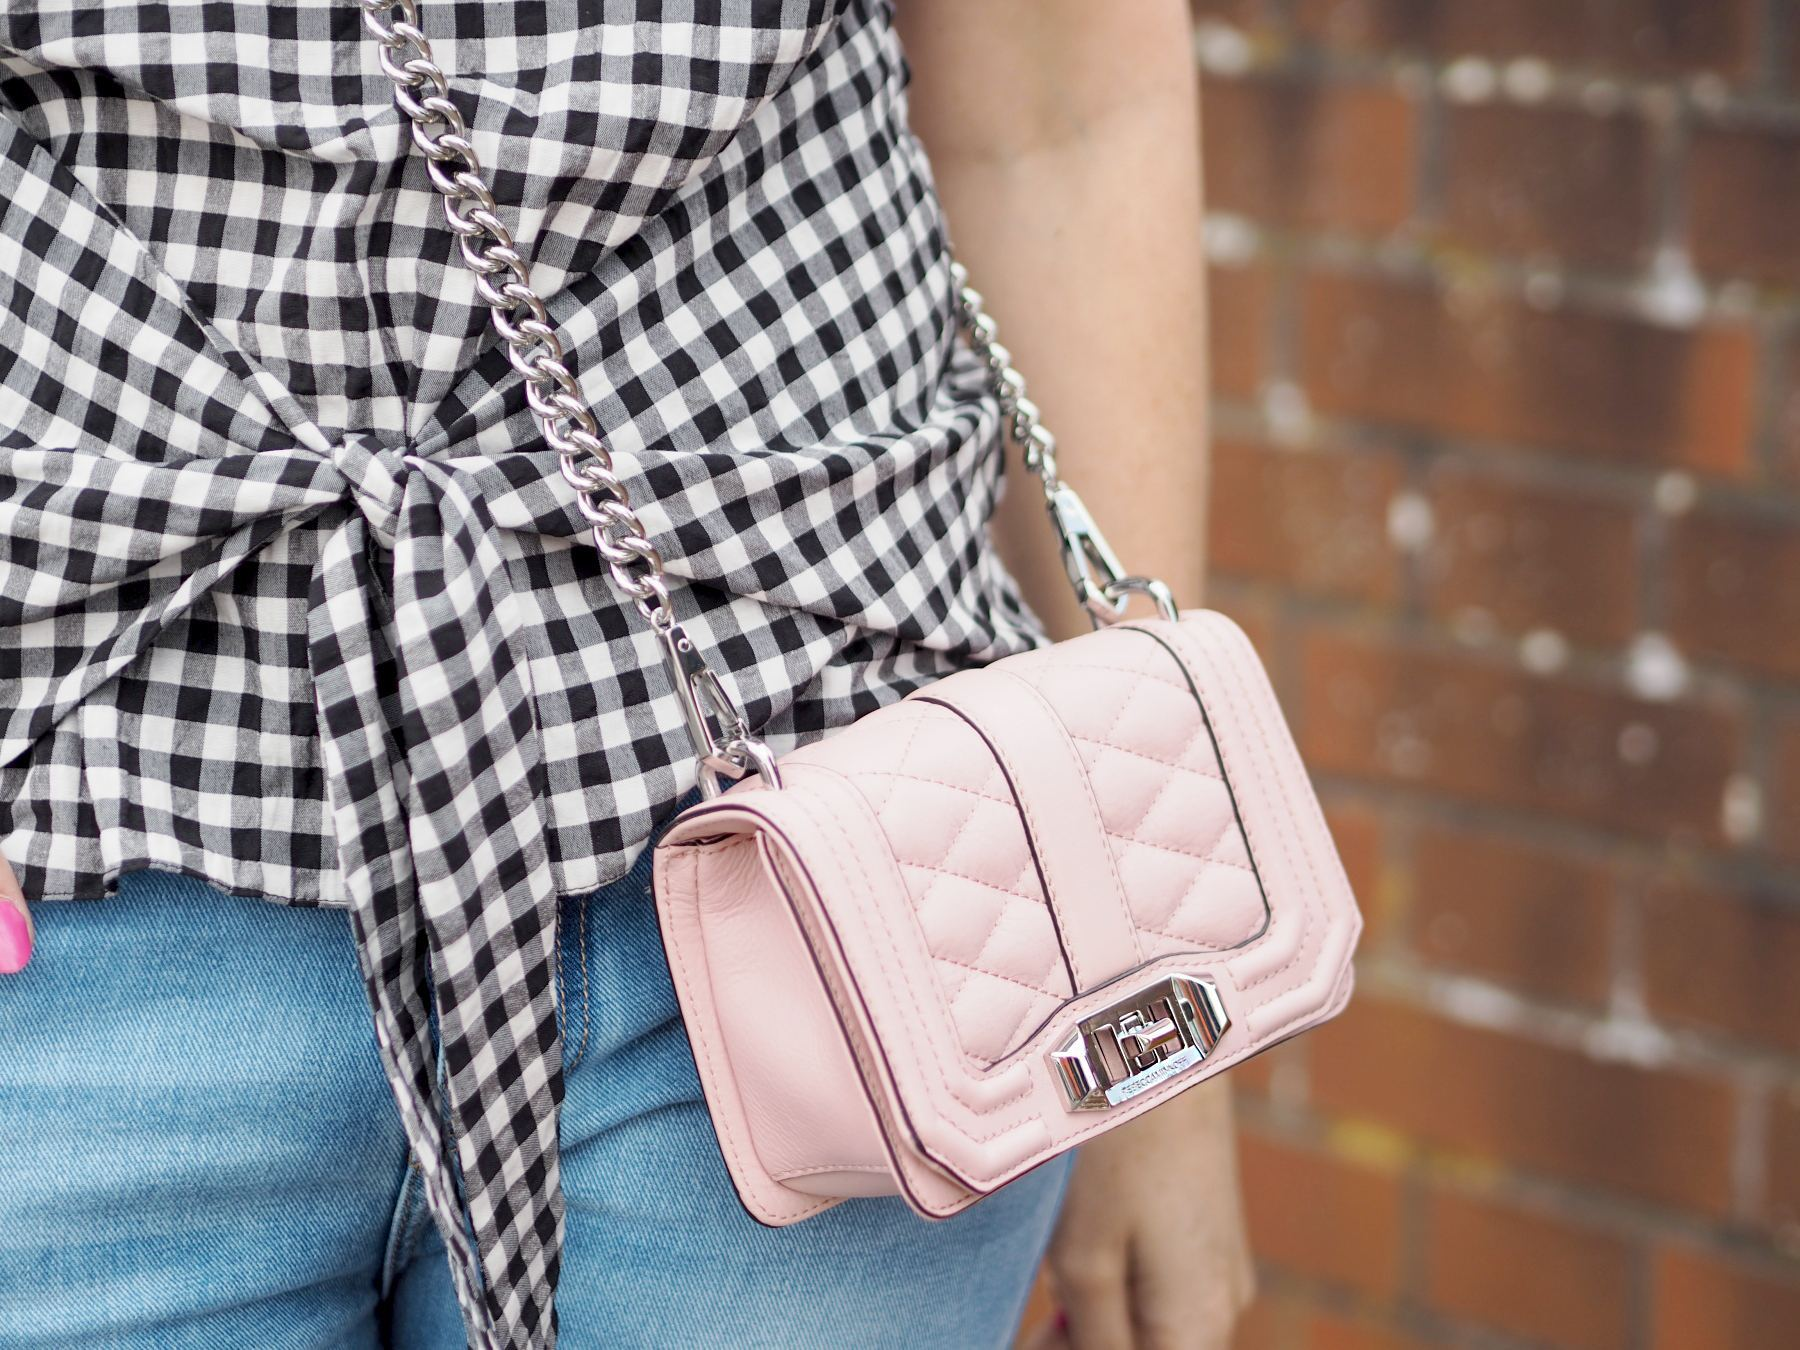 gingham top and pink handbag